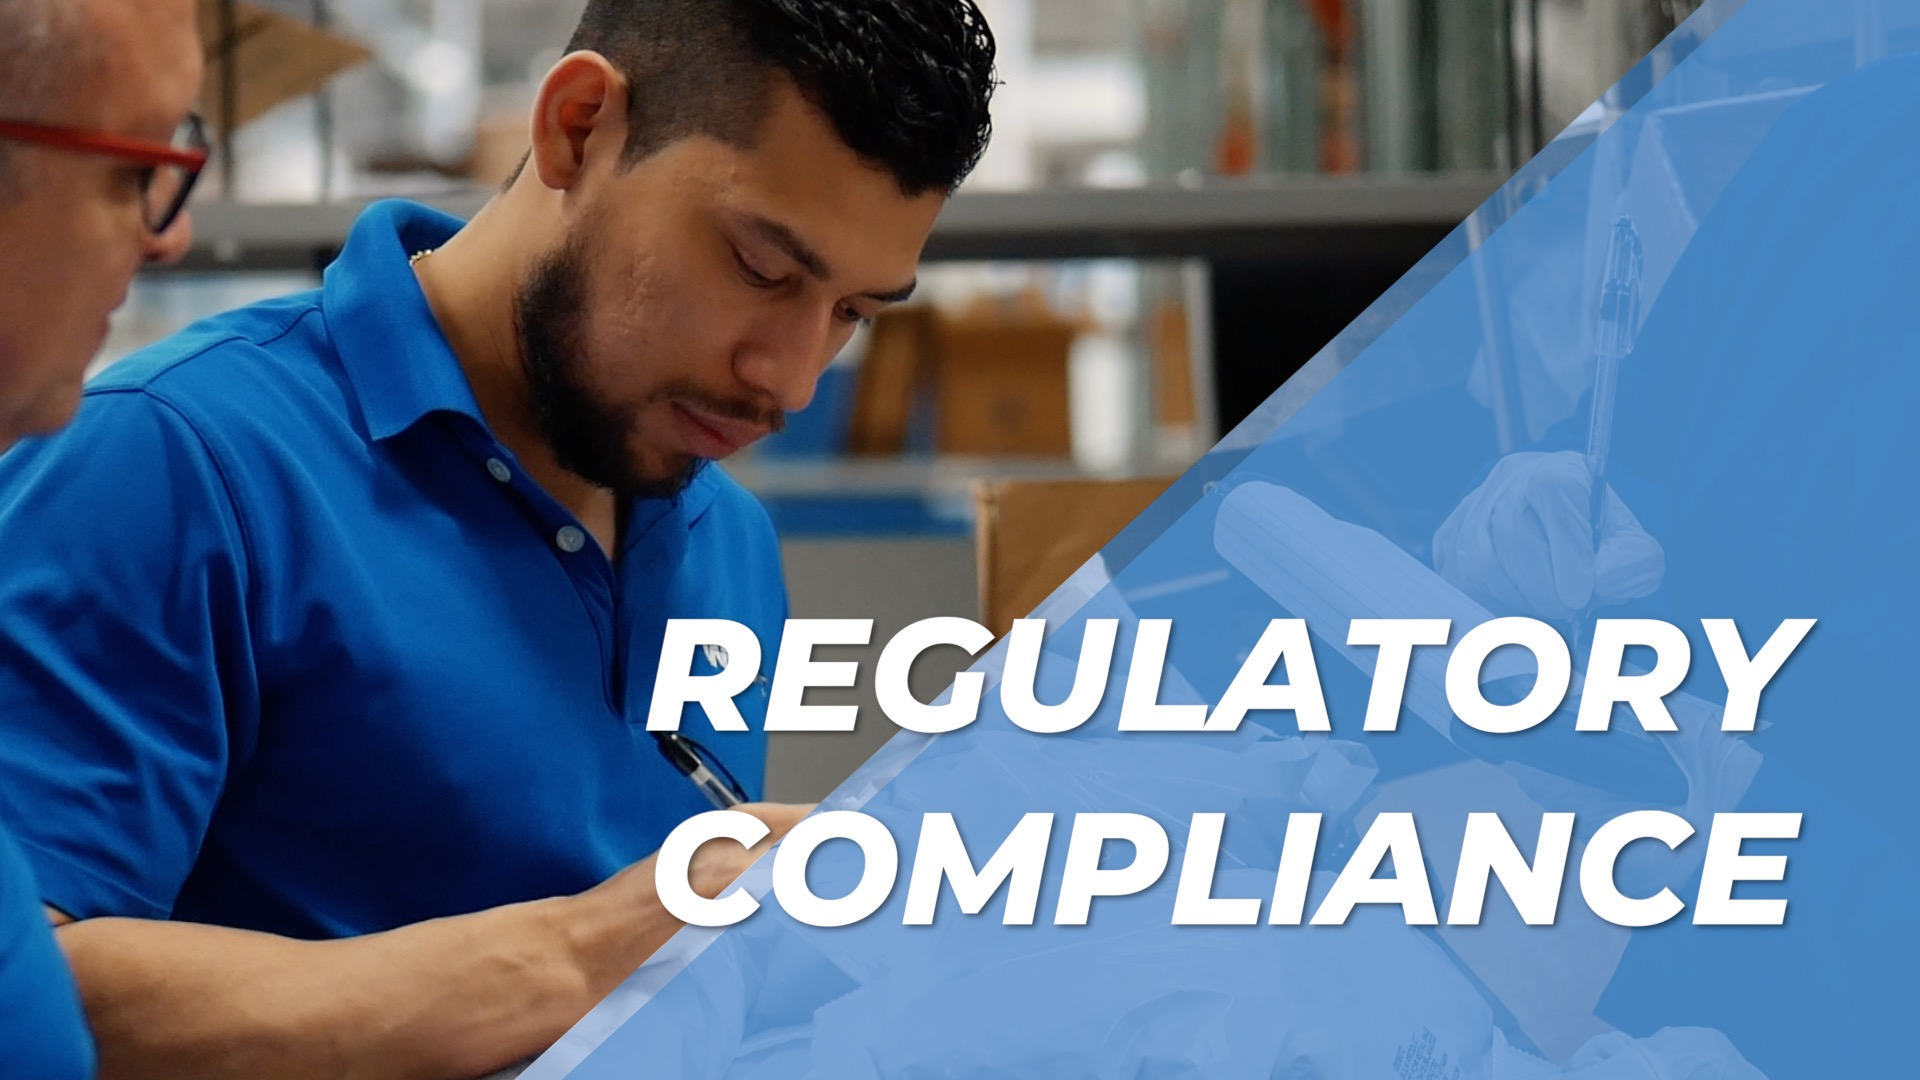 Regulatory Compliance is a new series that covers the legal department of documents for our news highlights this month.